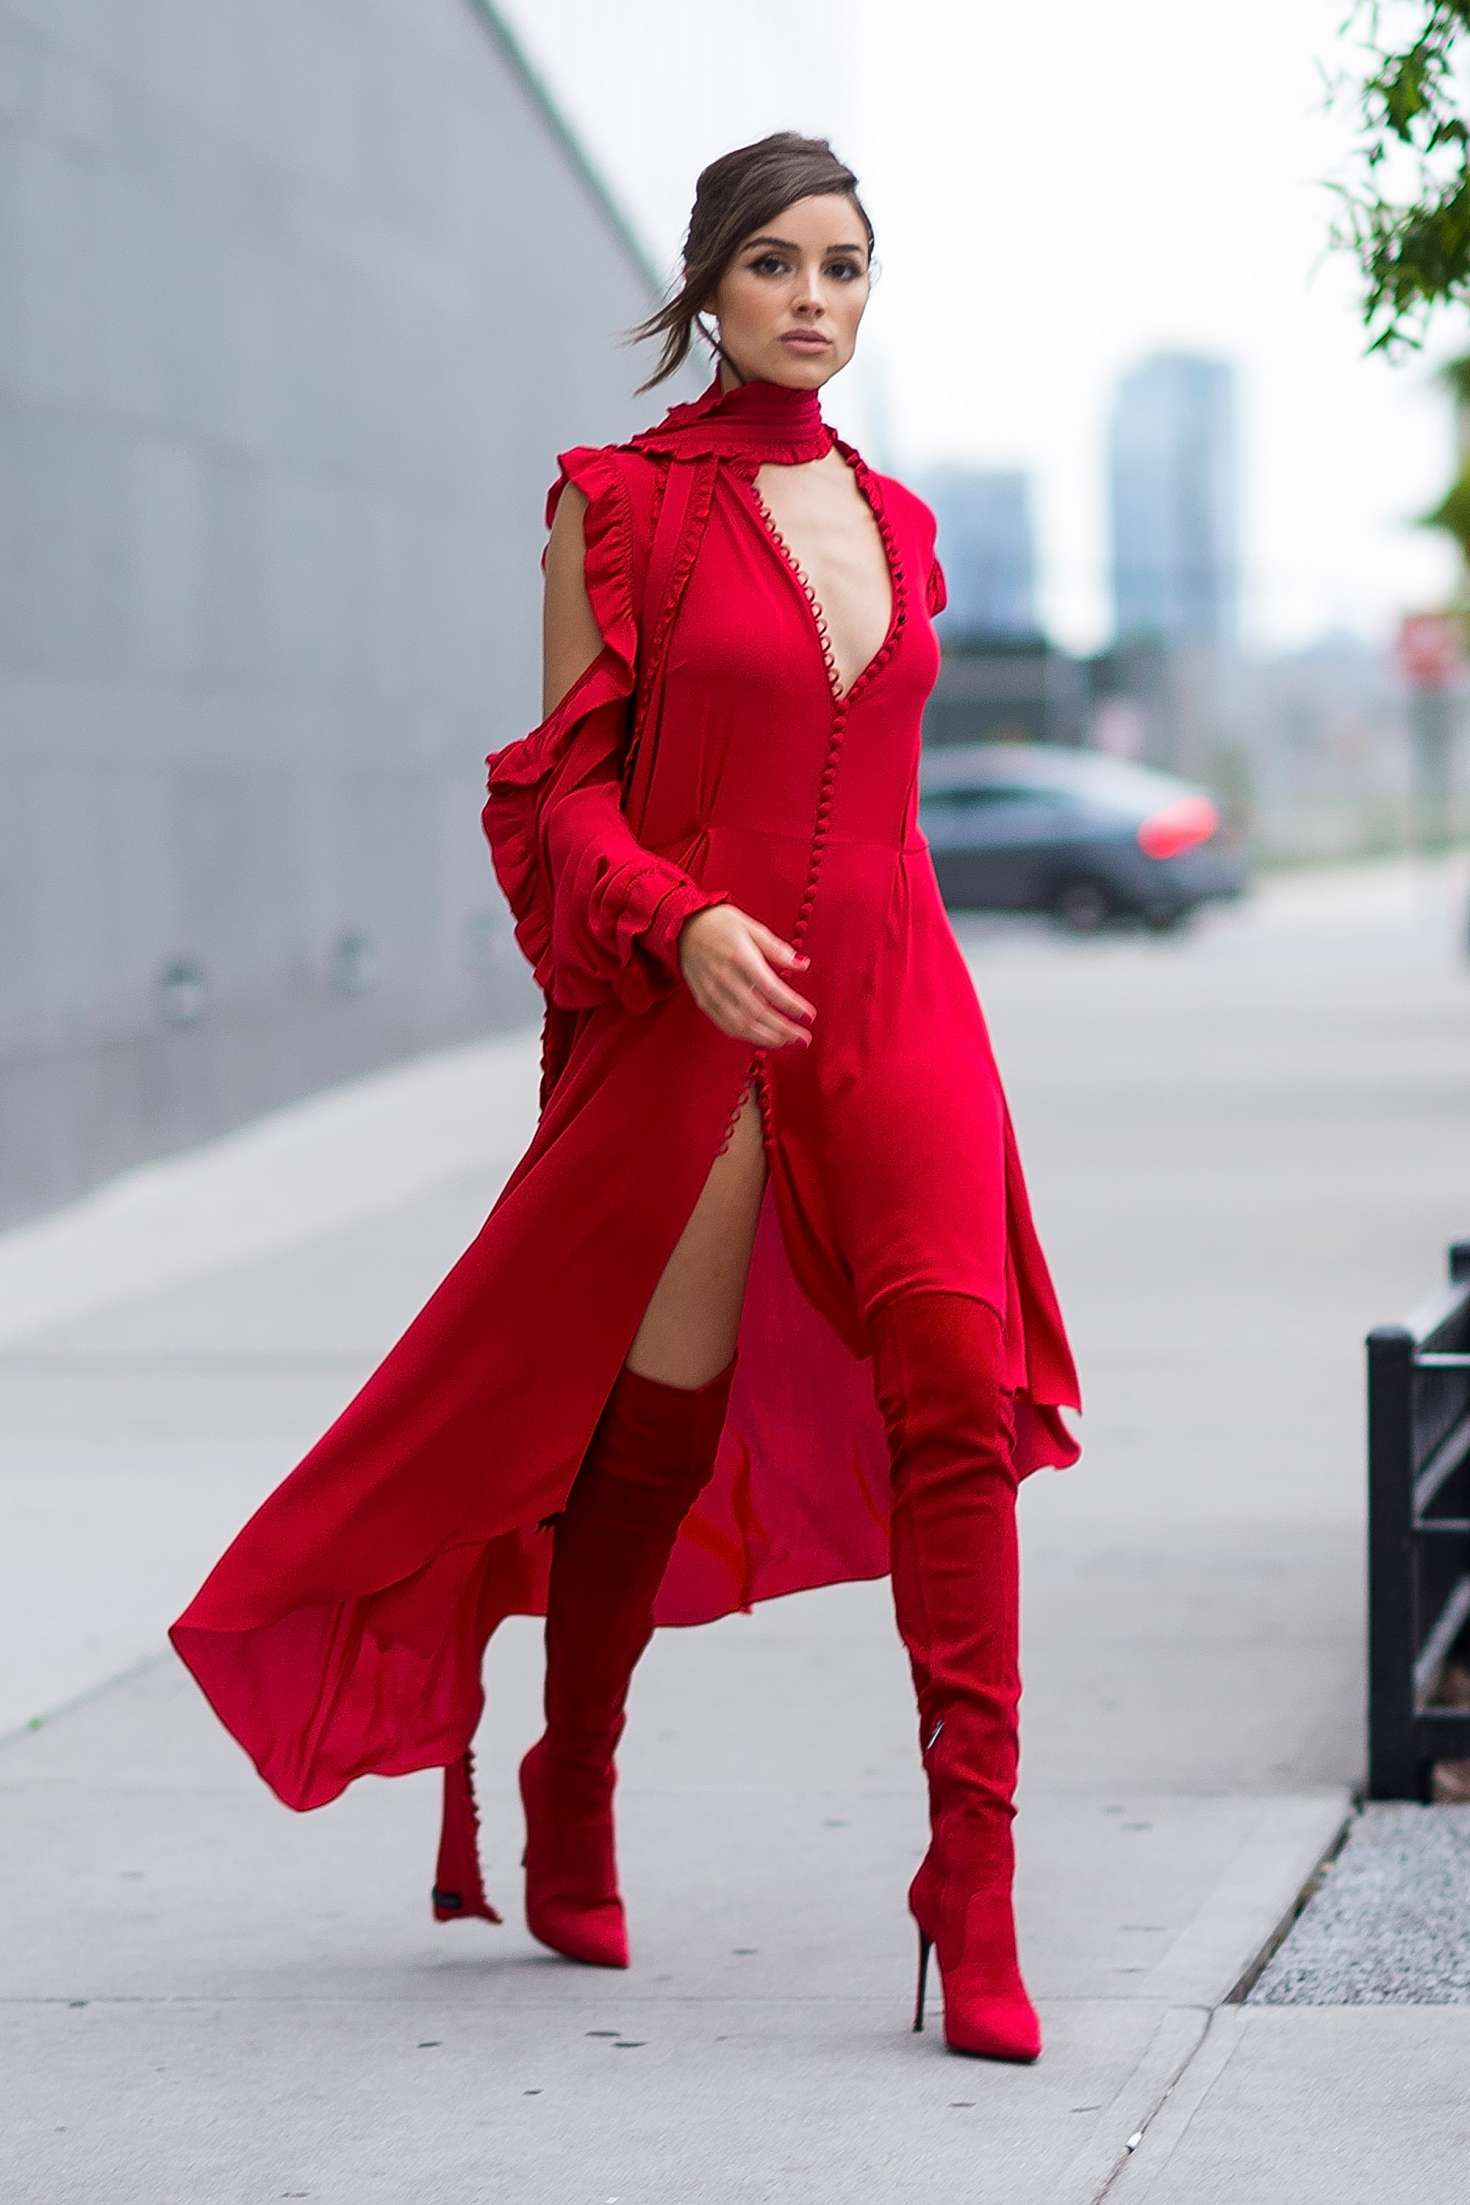 Olivia Culpo in Red Outfit in NYC